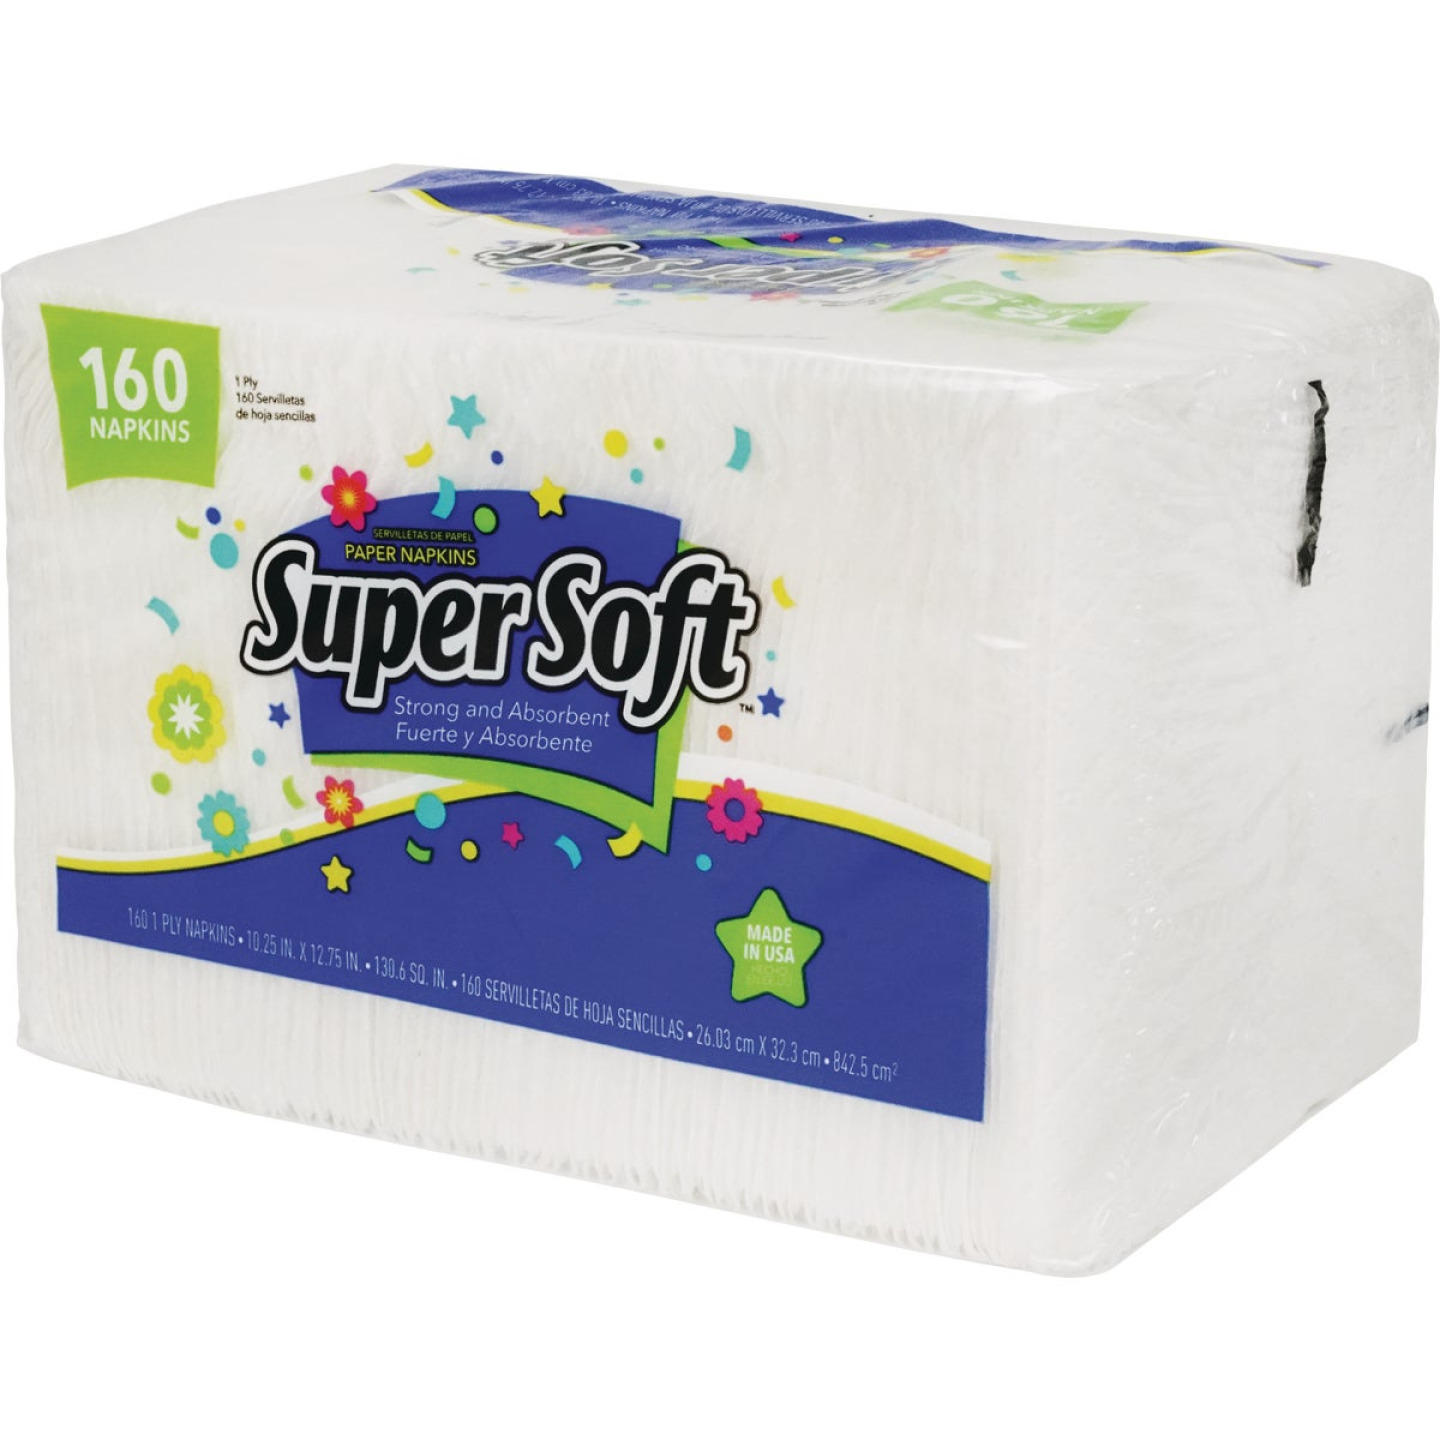 Super Soft Paper Napkins (160 Count) Image 1